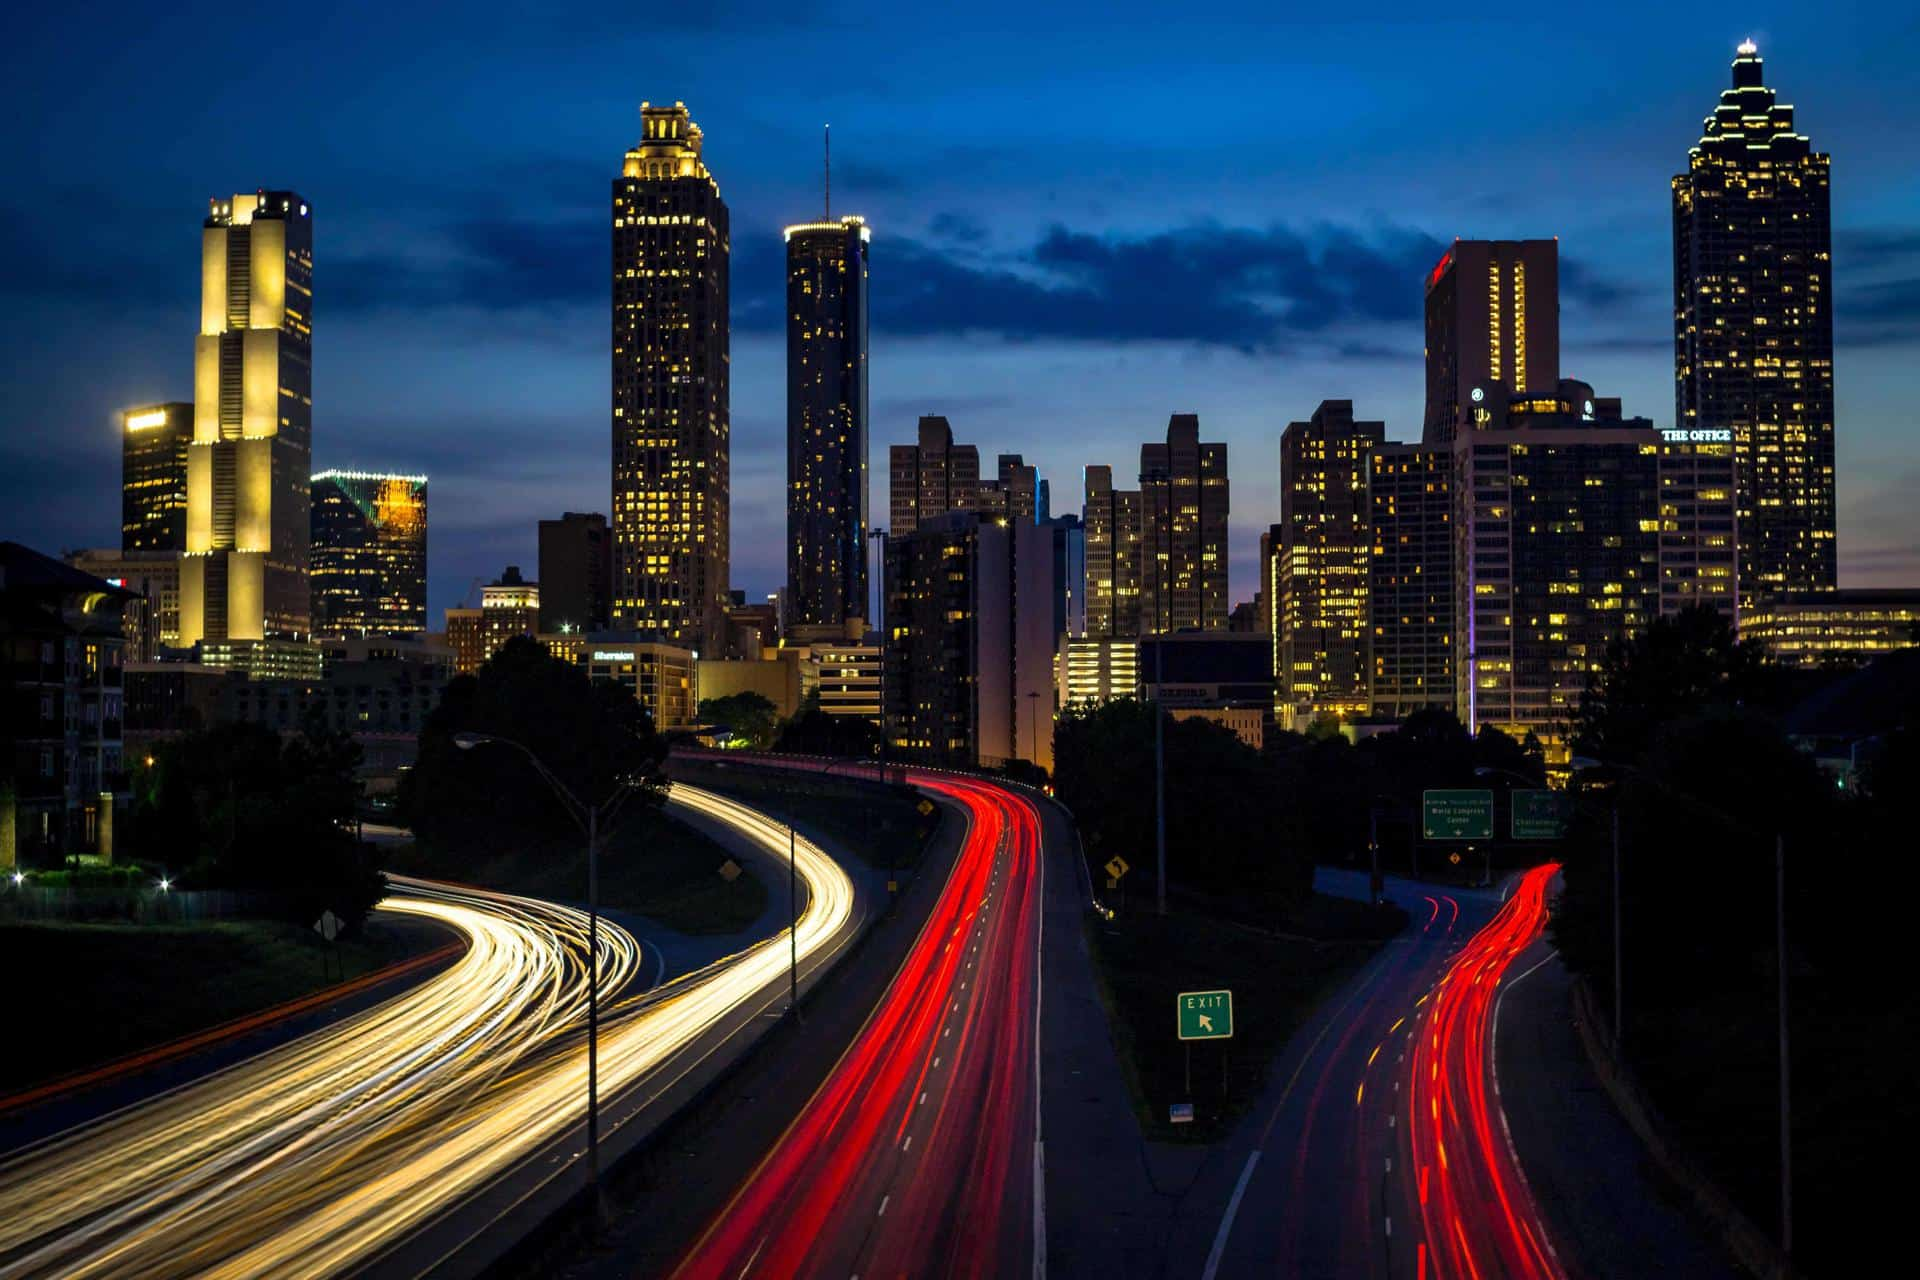 Aerial night shot of lit up buildings and roads